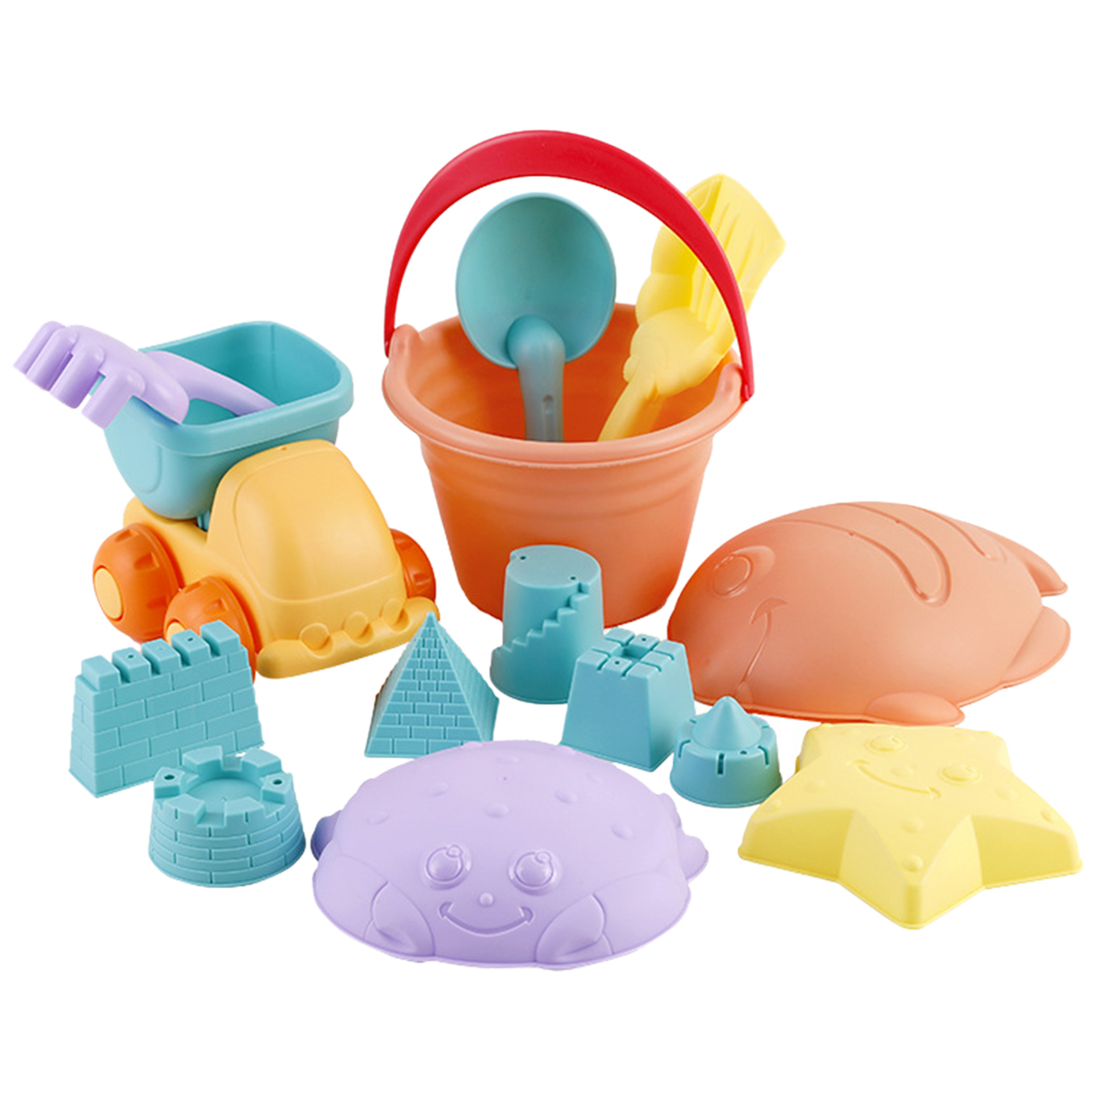 Toys & Hobbies 28pcs Children Outdoor Beach Sand Toy Beach Bucket Kettle 18pcs Sand Molds Water Can Playset With Mesh Bag Outdoor Pool Fun